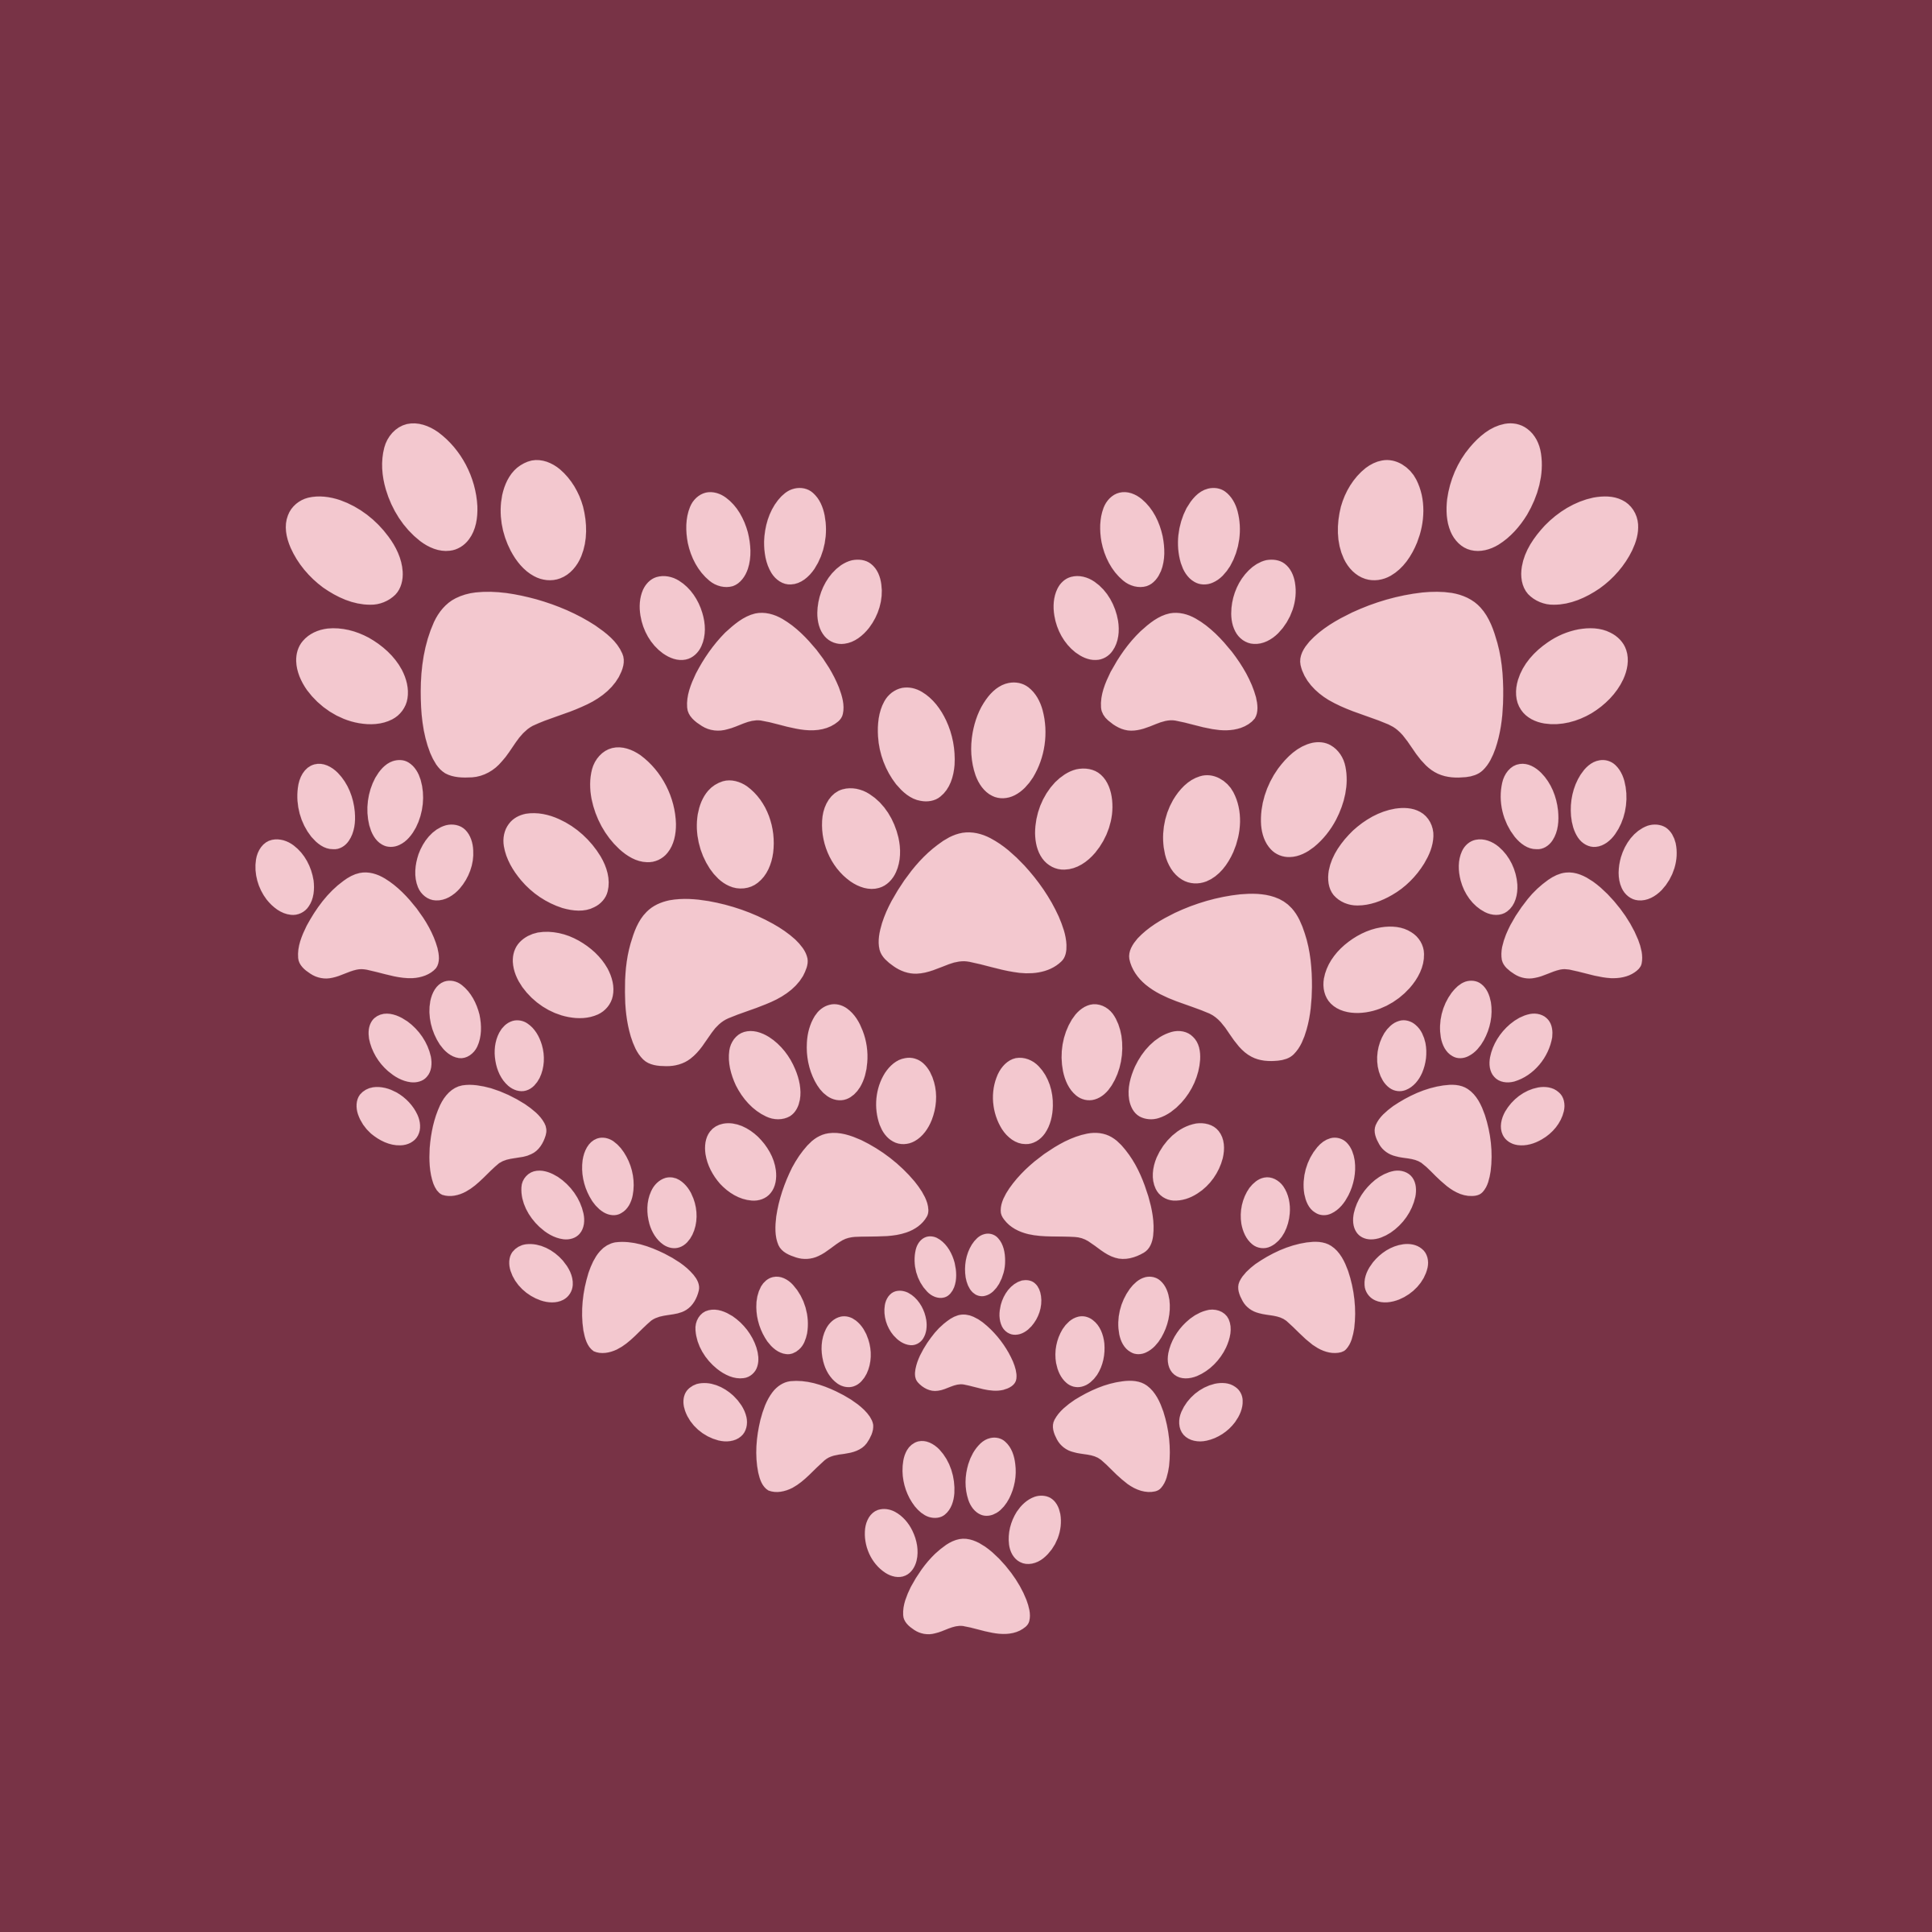 Paw Prints Heart by GDJ